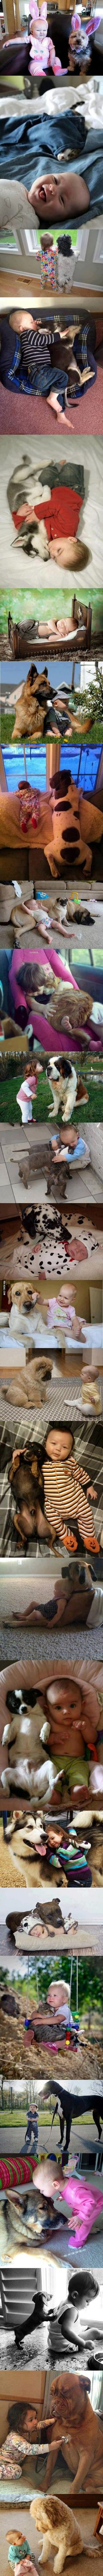 Babies and their pets. ADORABLE